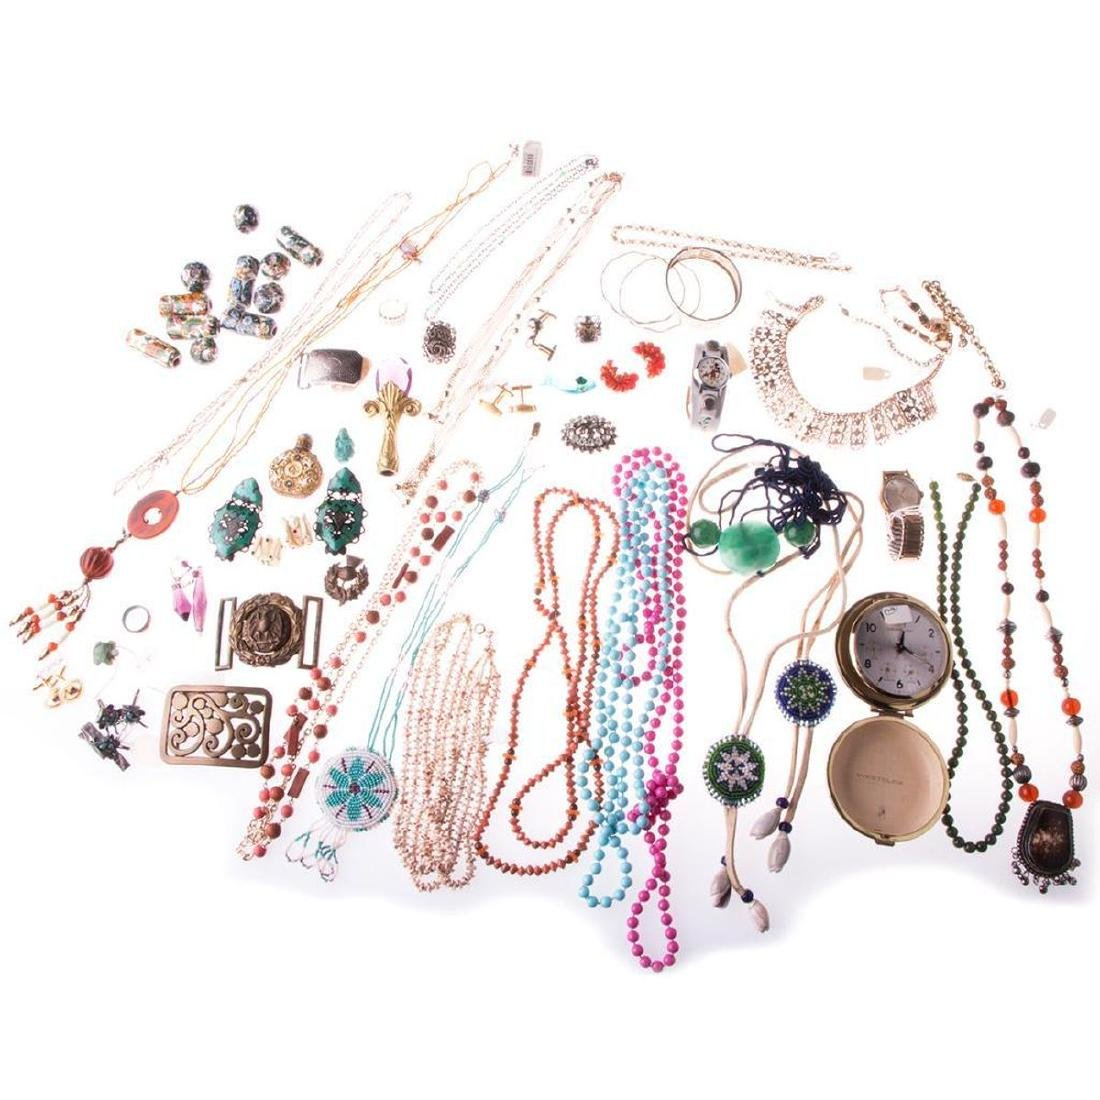 Collection of costume jewelry and assorted items